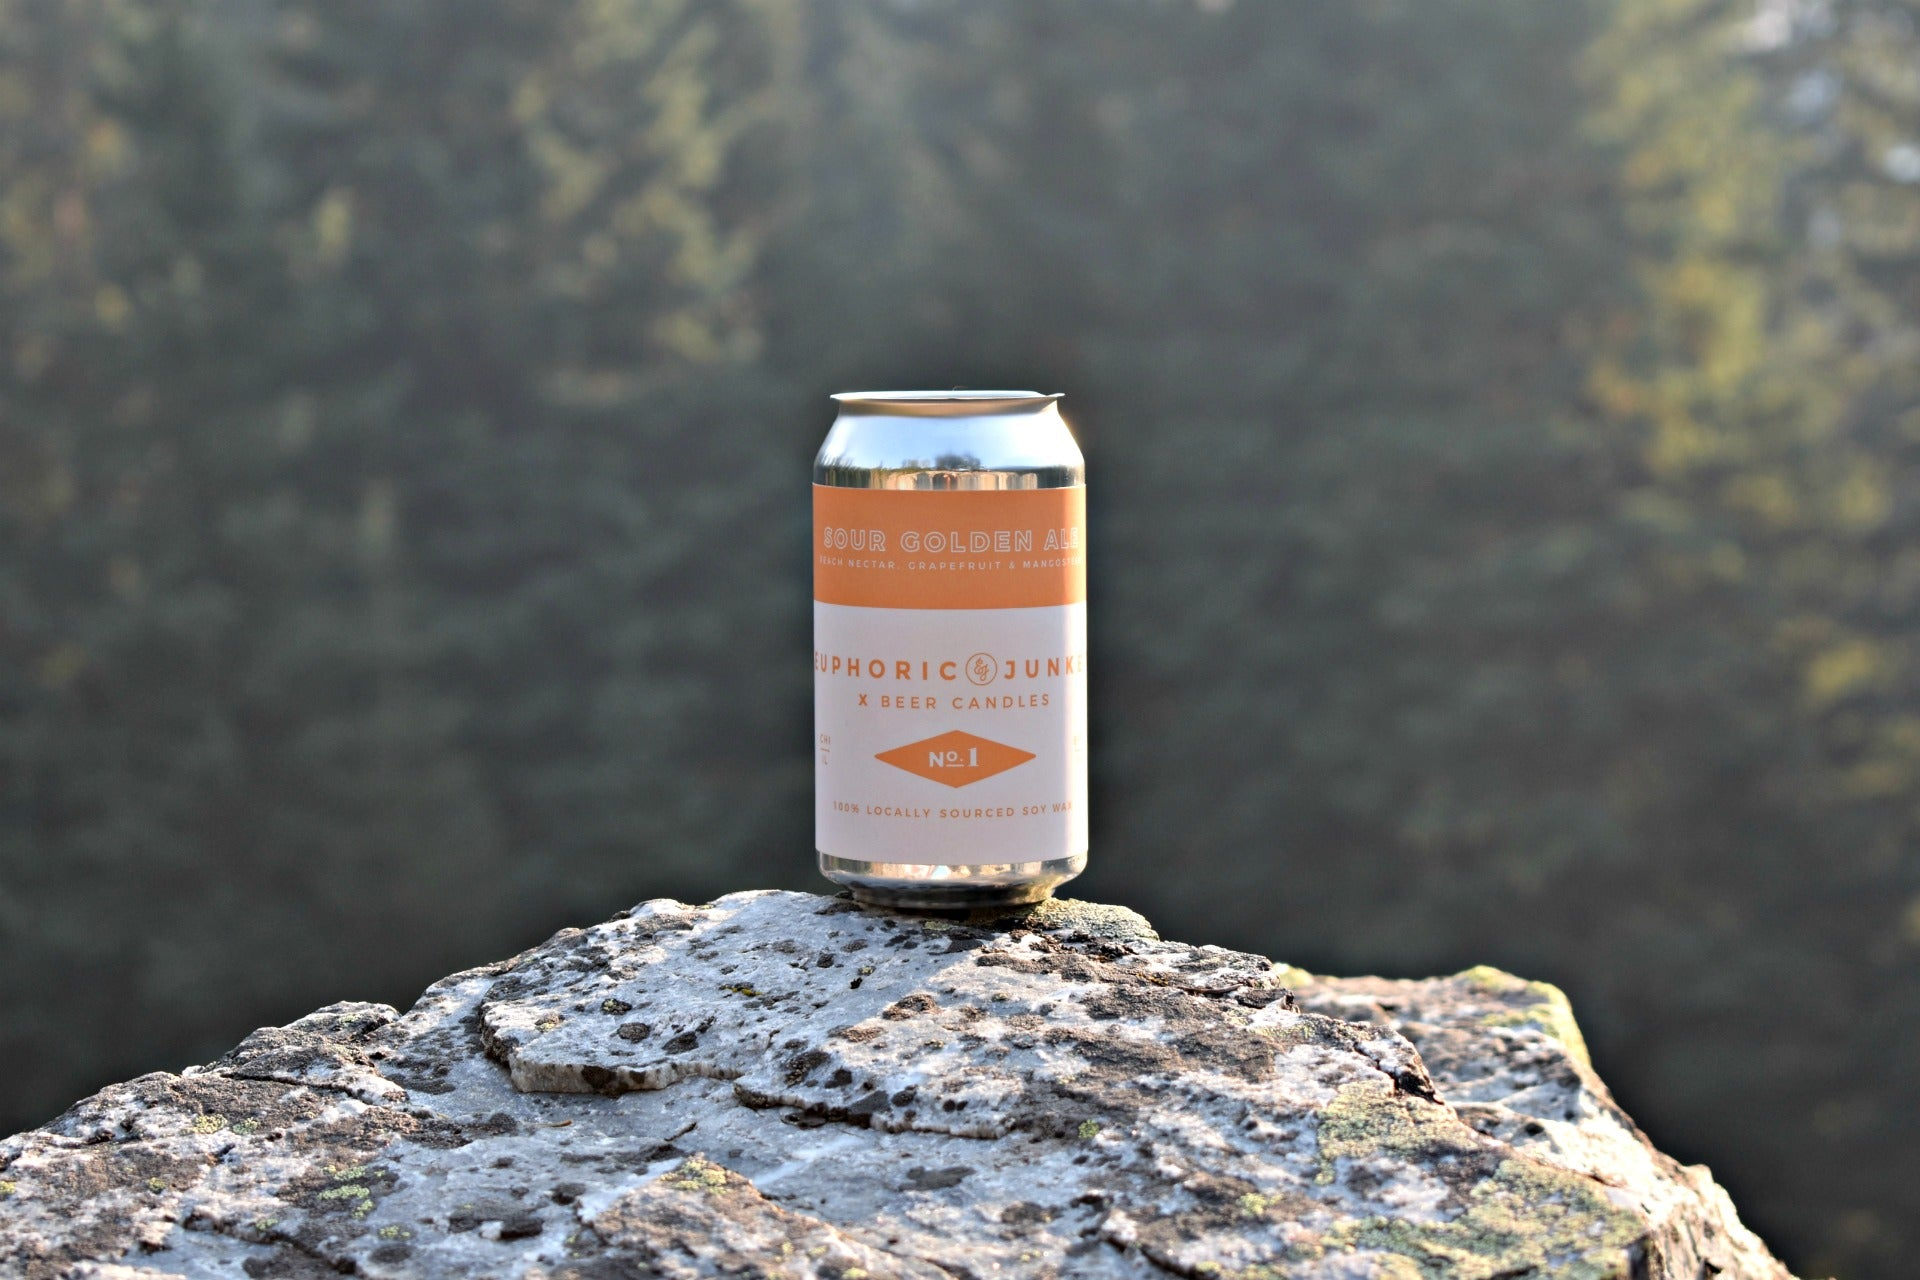 Sour Golden Ale Beer CAN·dle